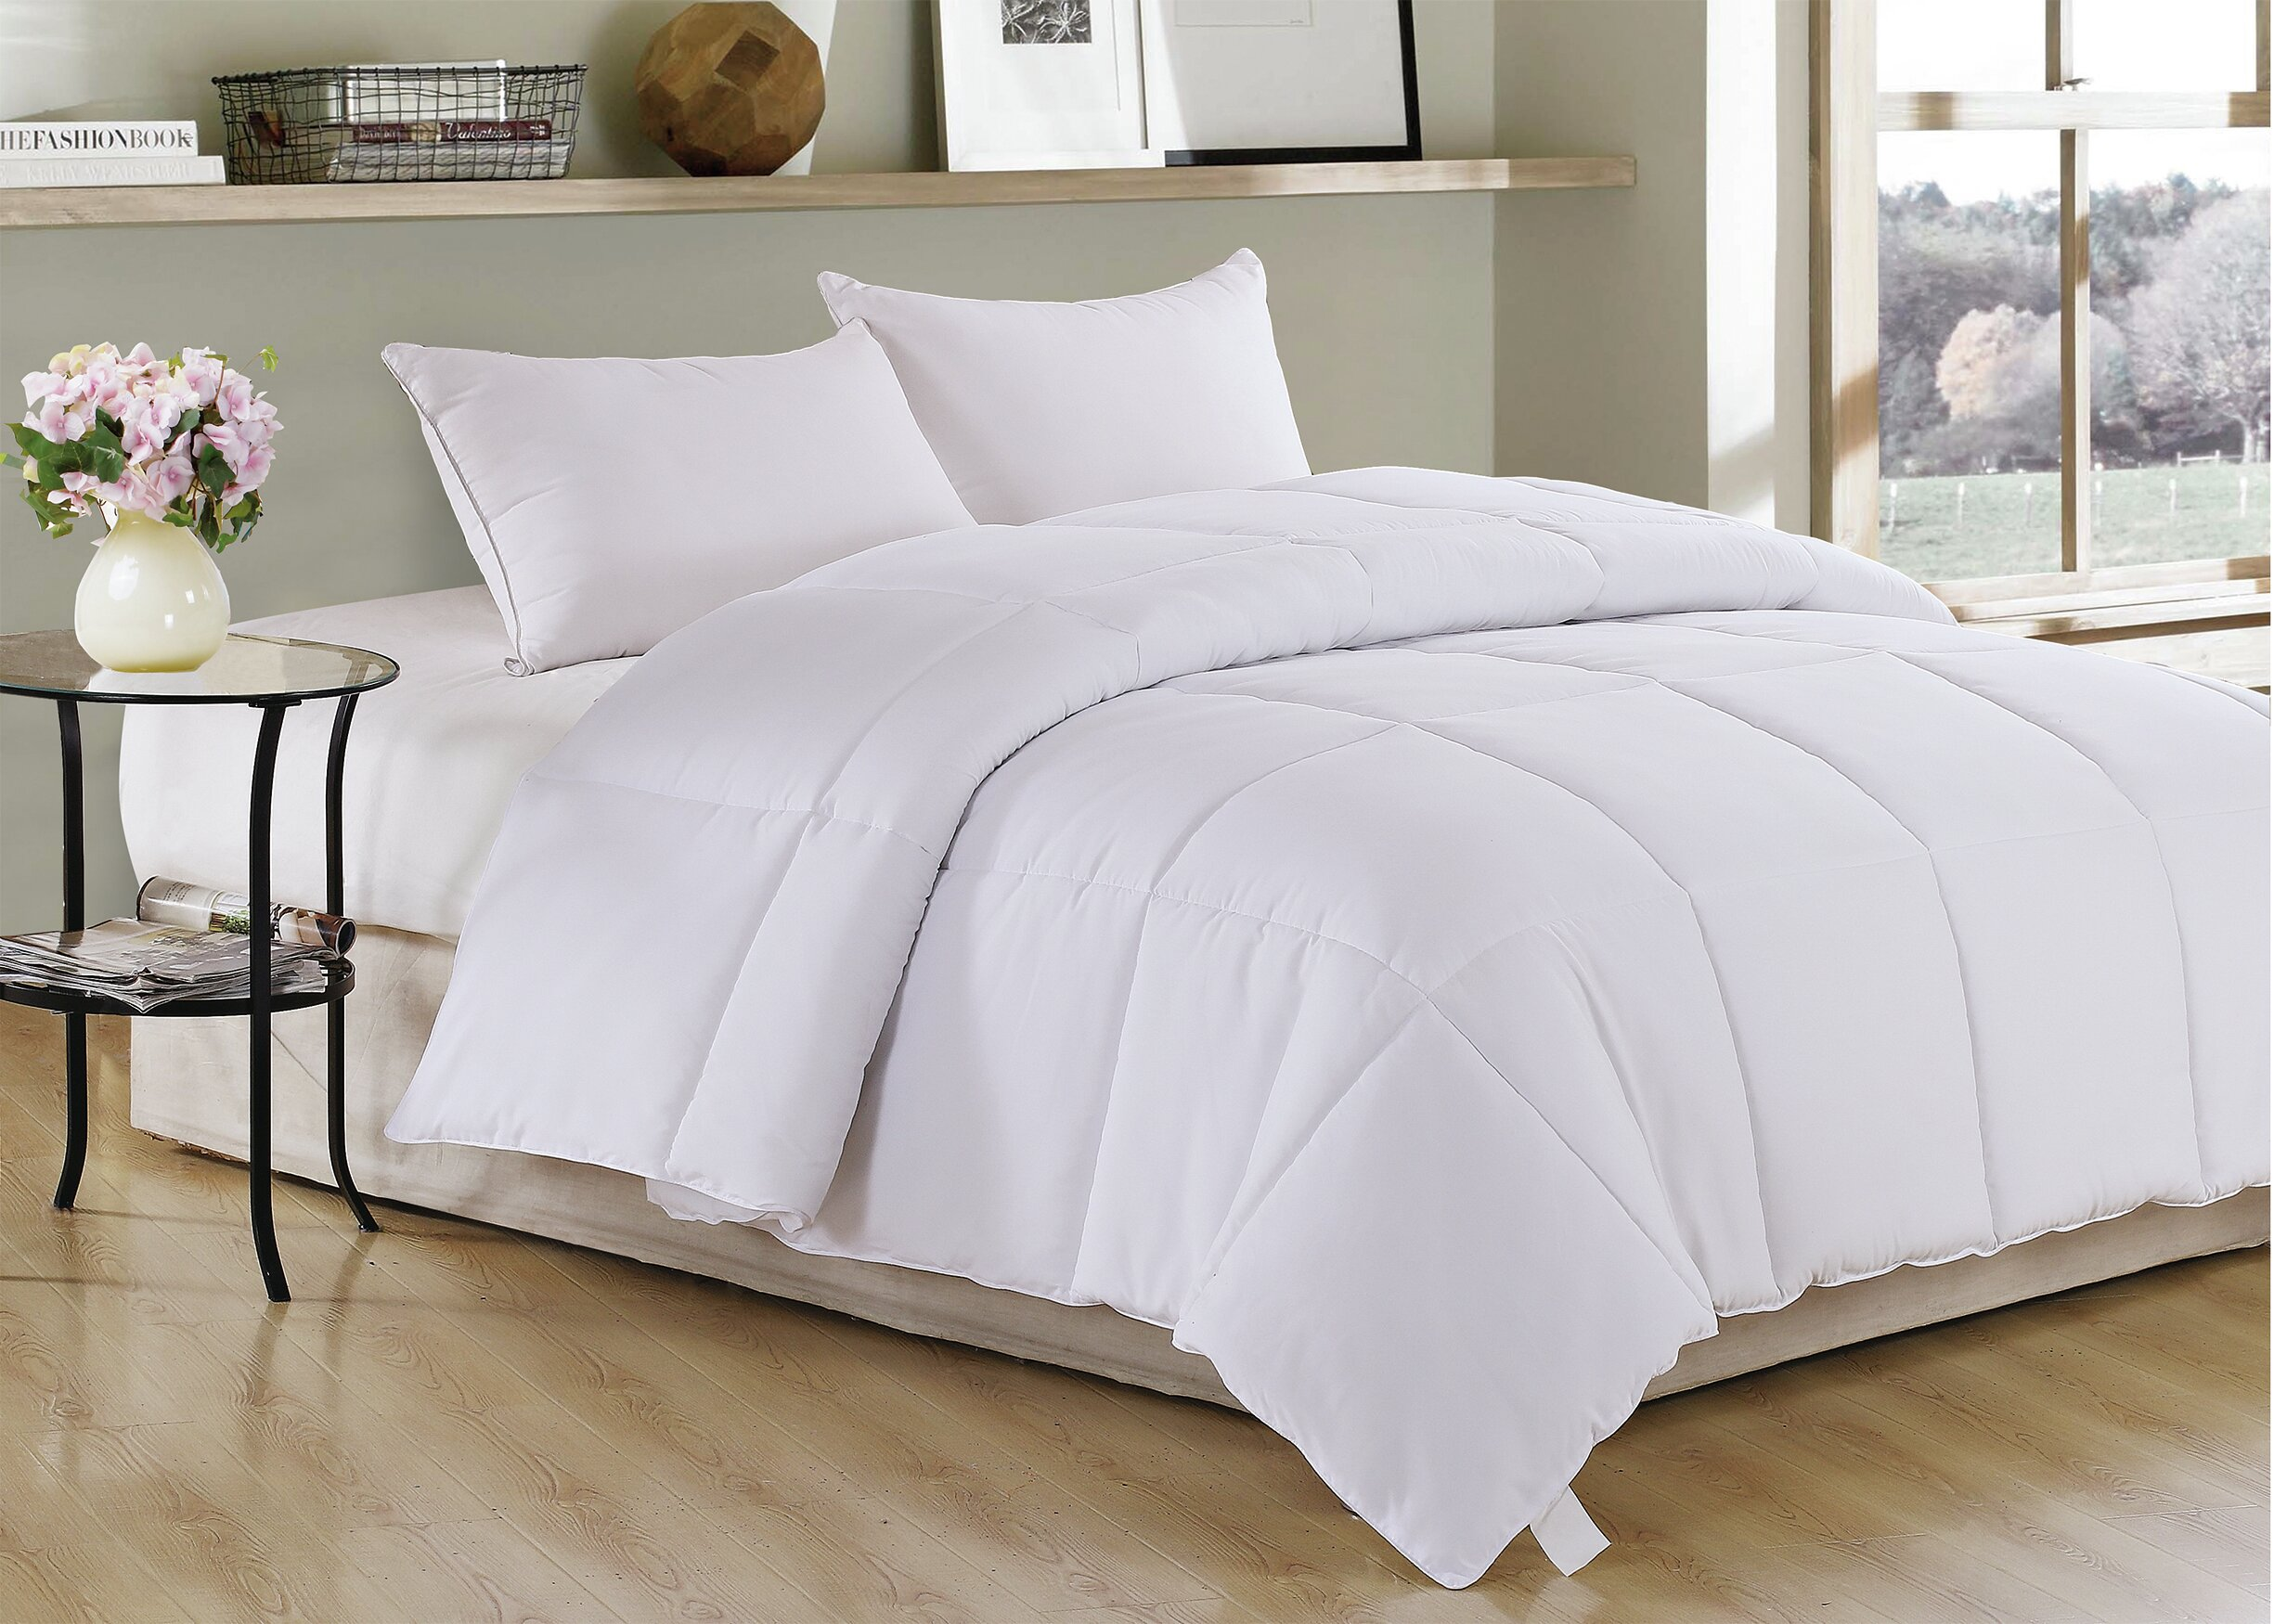 for hypoallergenic reversible medium comforter amrapur itm home ultra microfiber goose classics overseas duvet bedding quilted down soft warmth alternative insert all